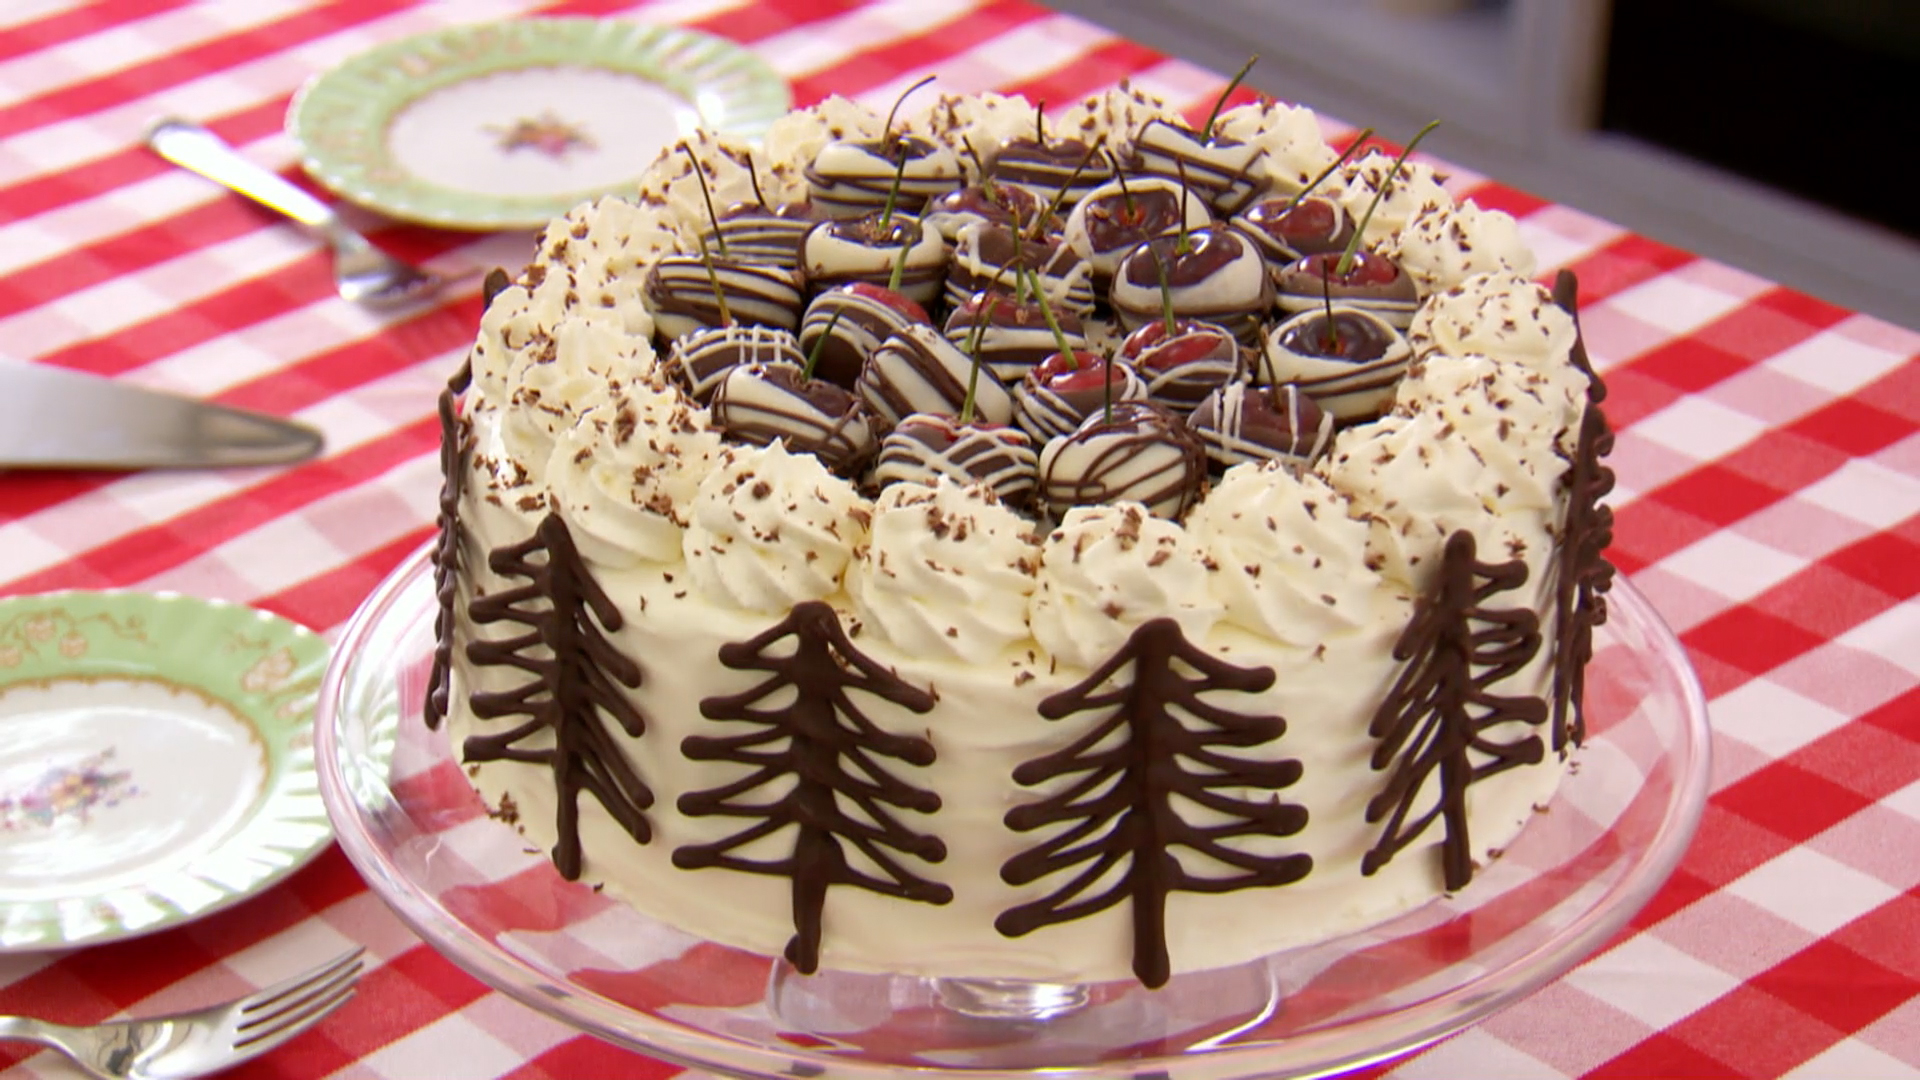 Mary S Black Forest Gateau Recipe The Great British Baking Show Pbs Food